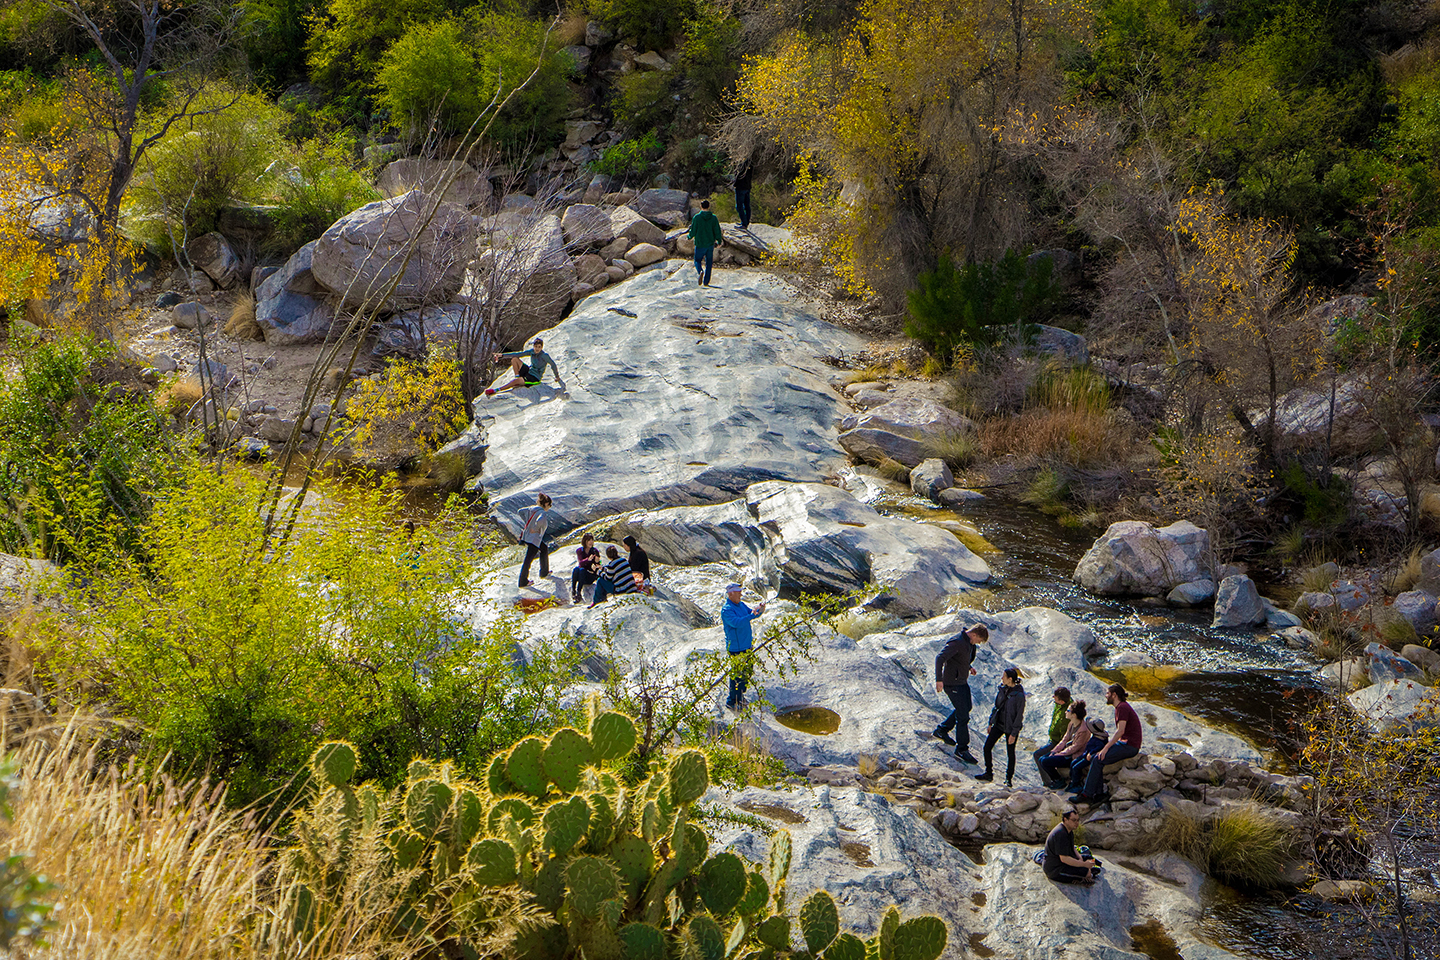 Located in the Catalina Foothills area is Sabino Canyon Recreation Area. A popular place for residents and visitors to hike, walk and enjoy the beauty of the Santa Catalina mountains.